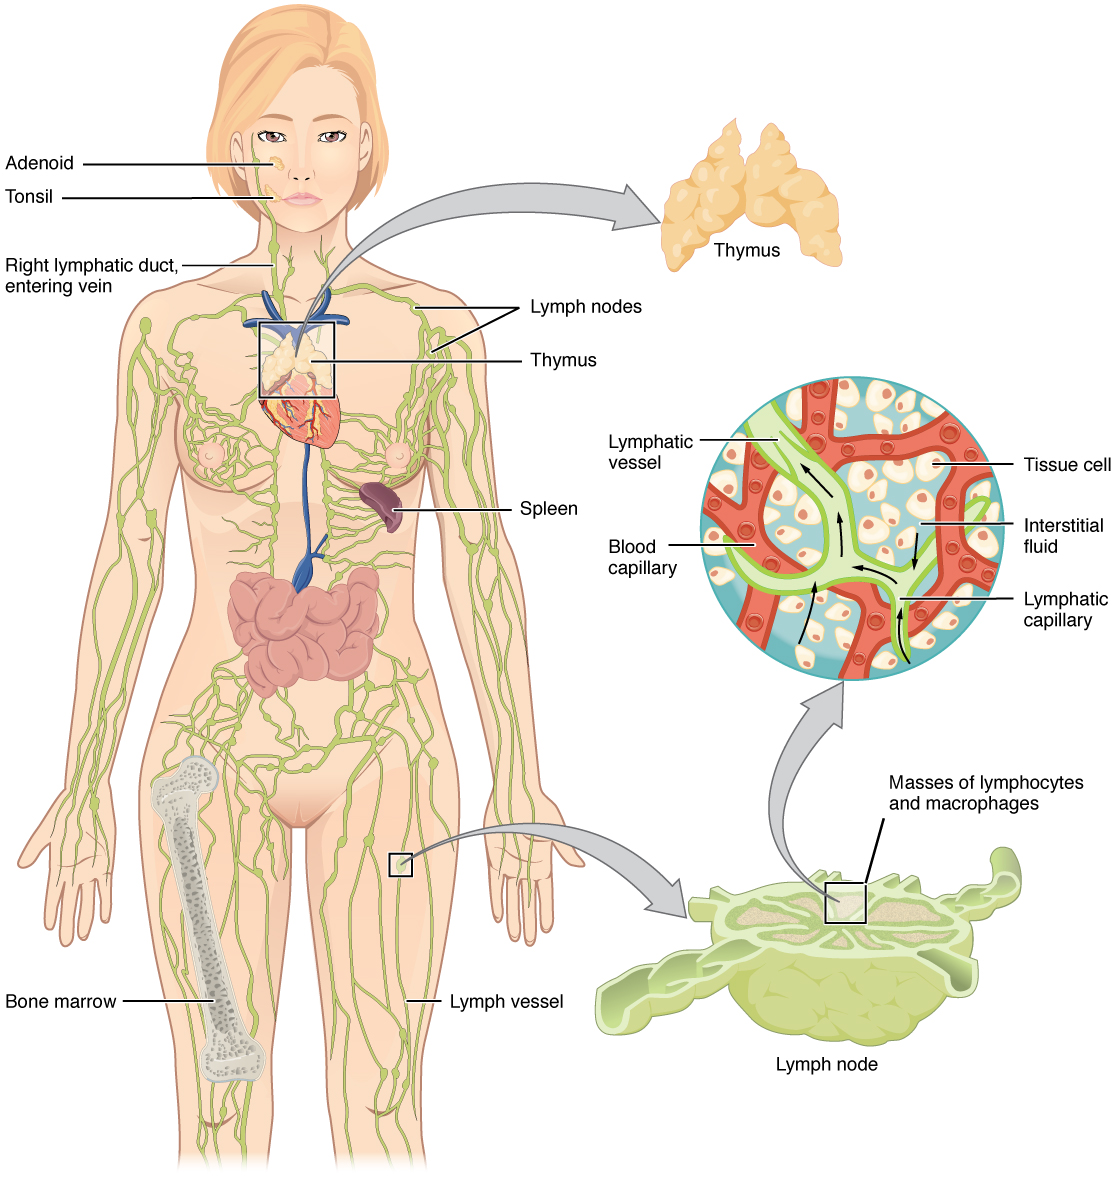 Anatomy Of The Lymphatic And Immune Systems Anatomy And Physiology